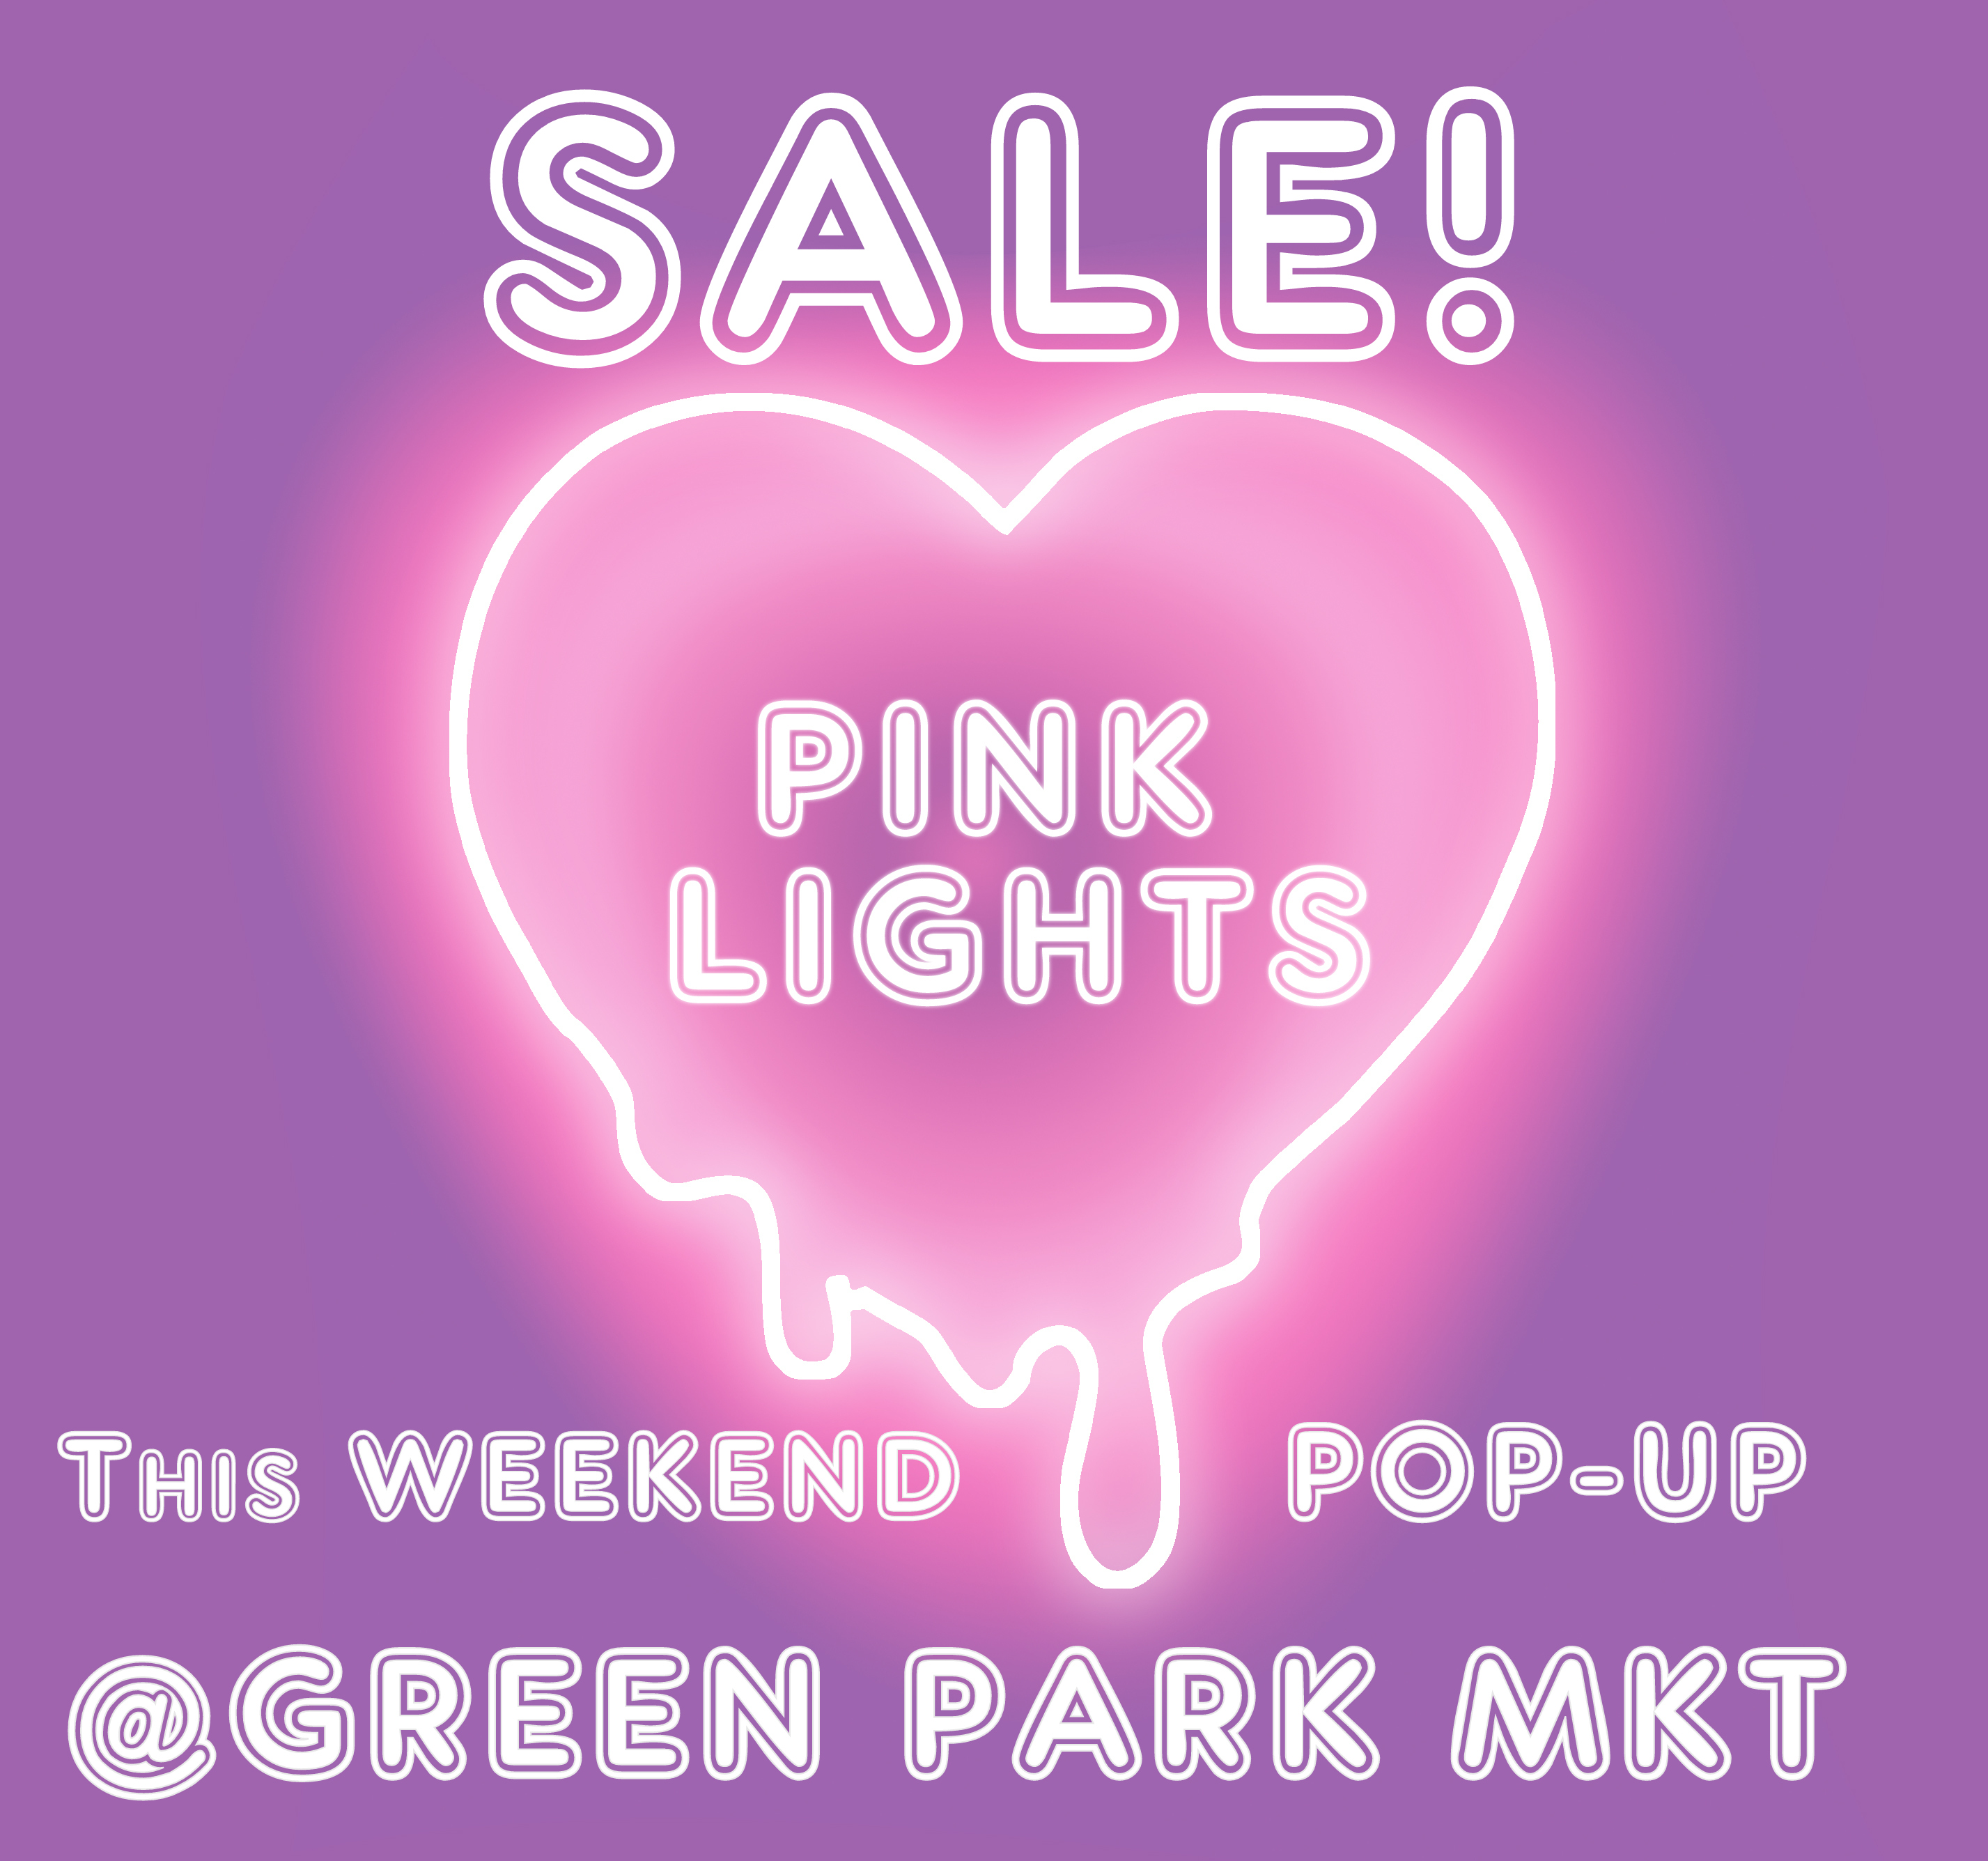 Event - Pink Lights Sale - A Pop-up to grab International trends @Greenpark Market this weekend